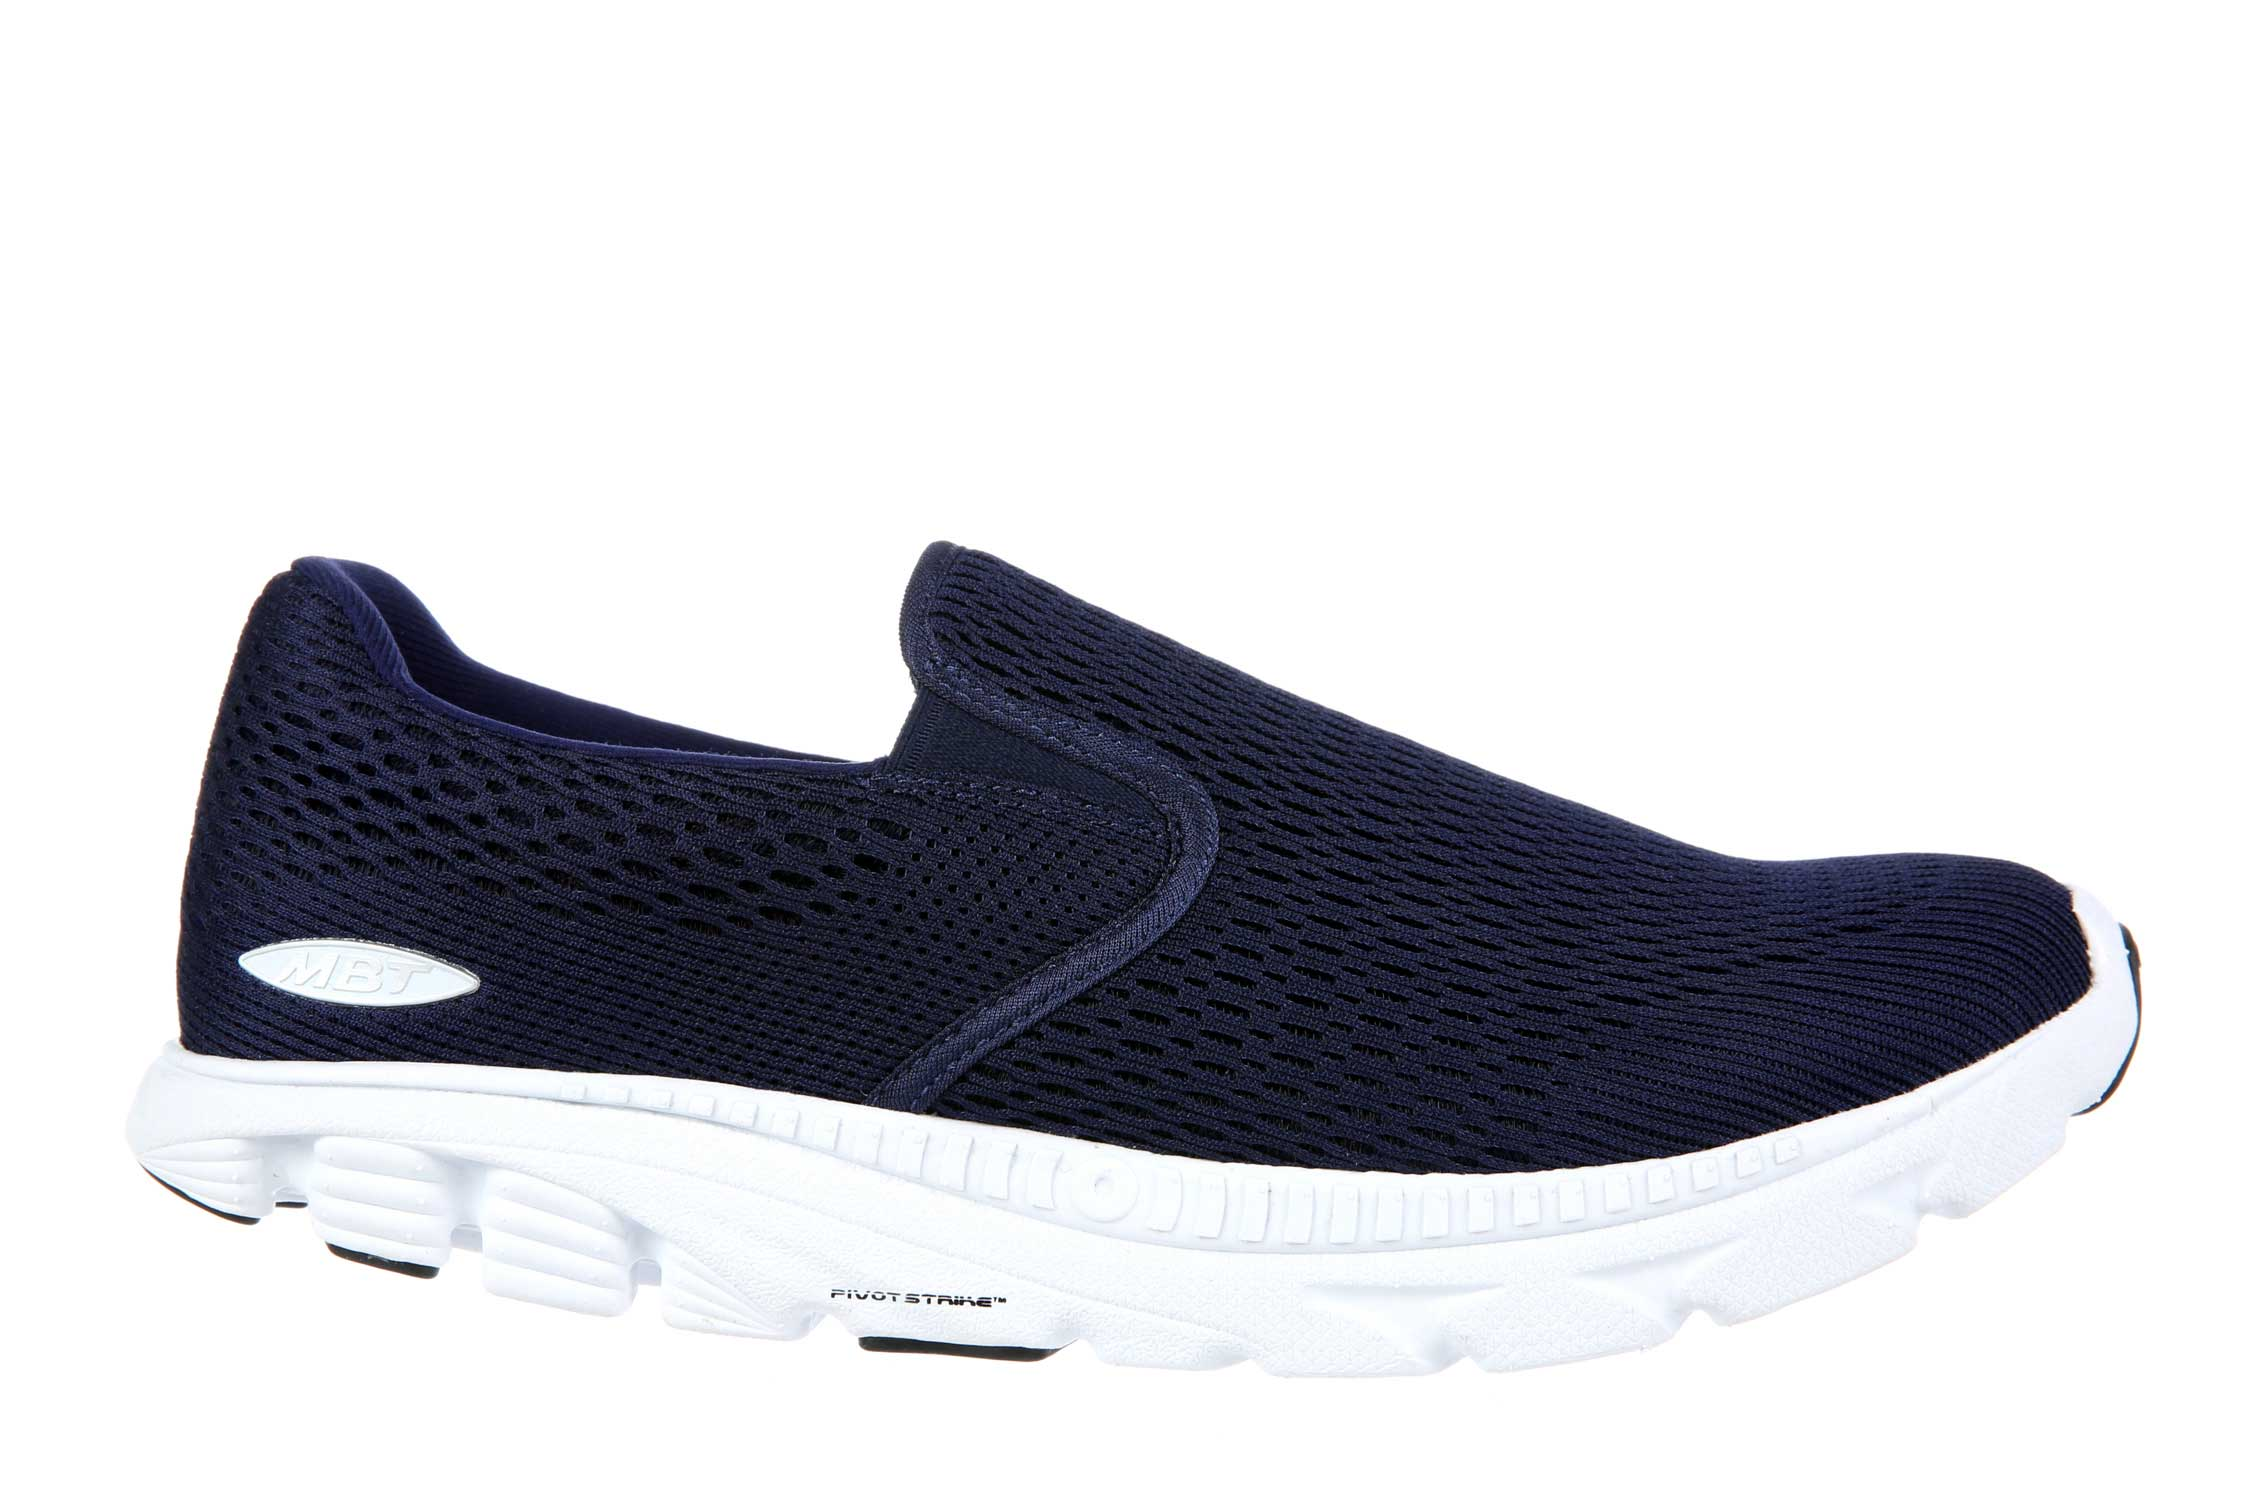 The MBT Shoes Men's Speed 17 Slip-on Athletic Shoe - 700899 - The MBT Speed  Slip-On is a great post-exercise footwear option to allow the muscles and  ...